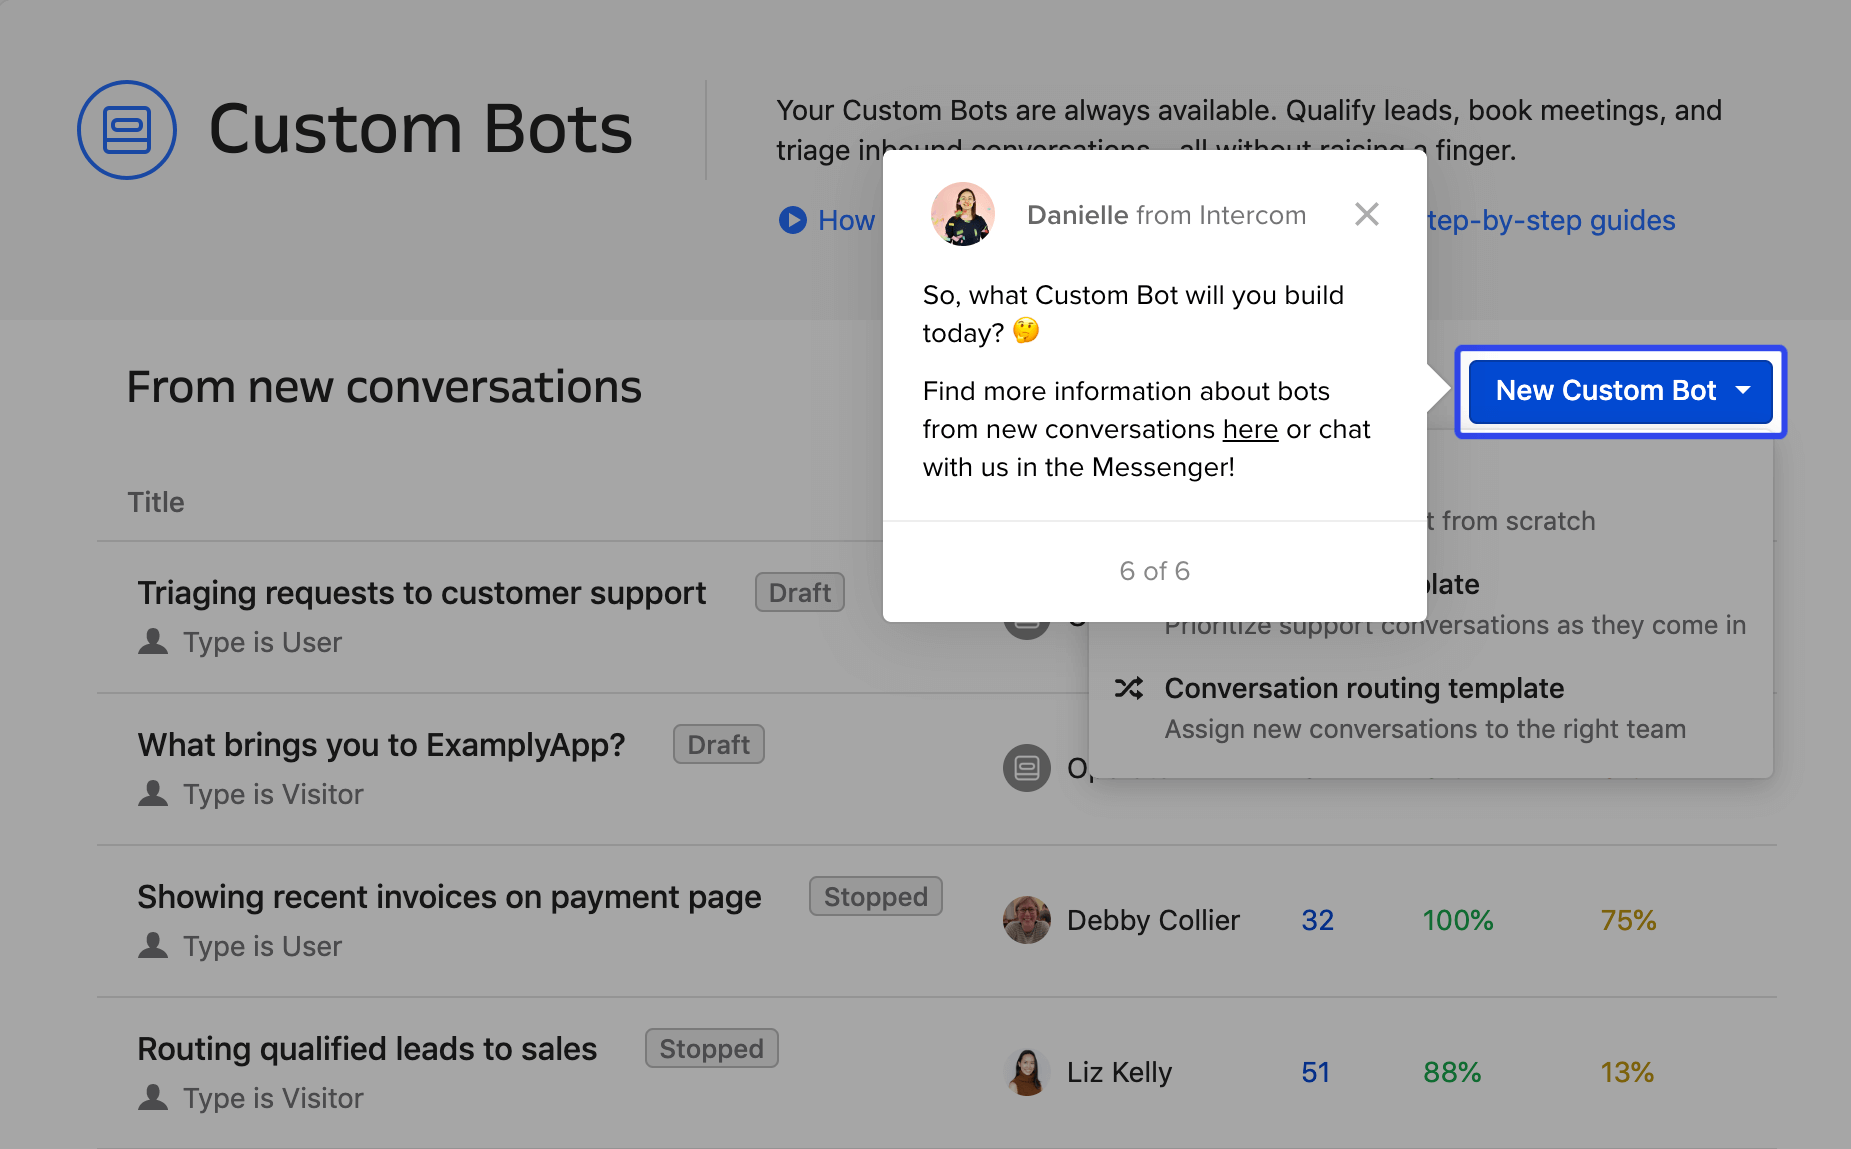 An example of how we share articles in Product Tours – in this case, onboarding customers to Custom Bots.